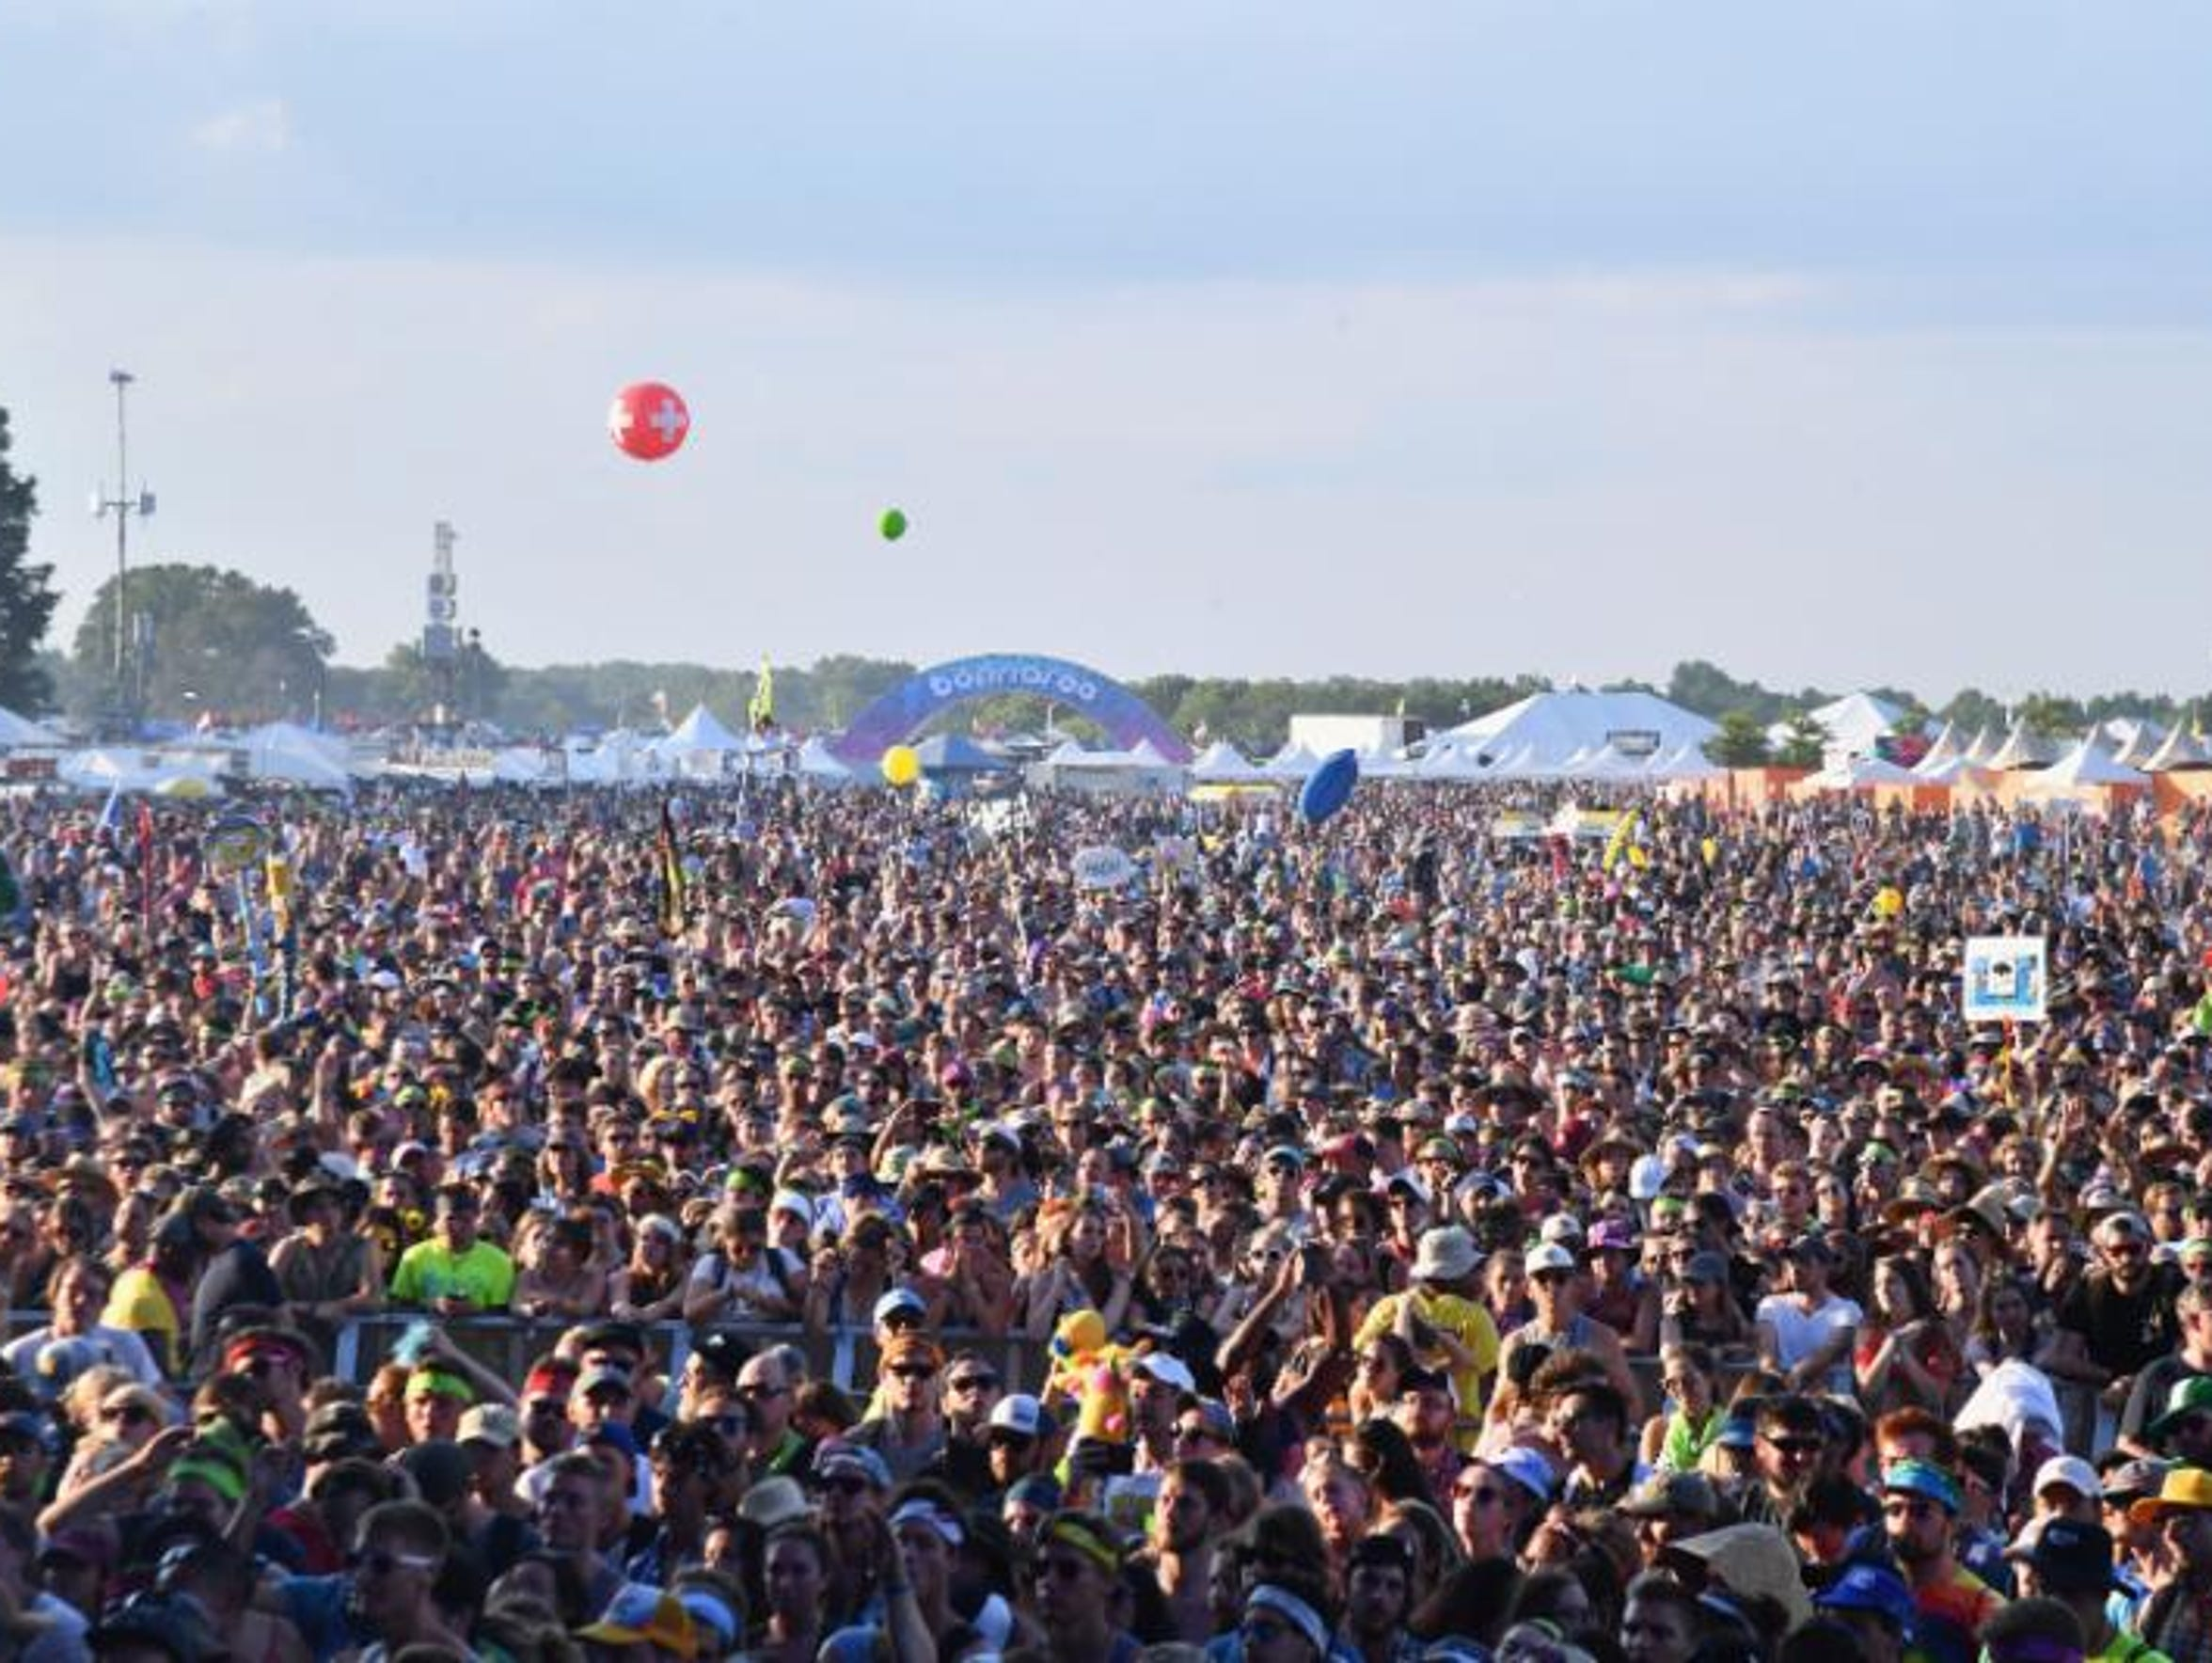 Bonnaroo 2017 brought a magical experience to festival-goers